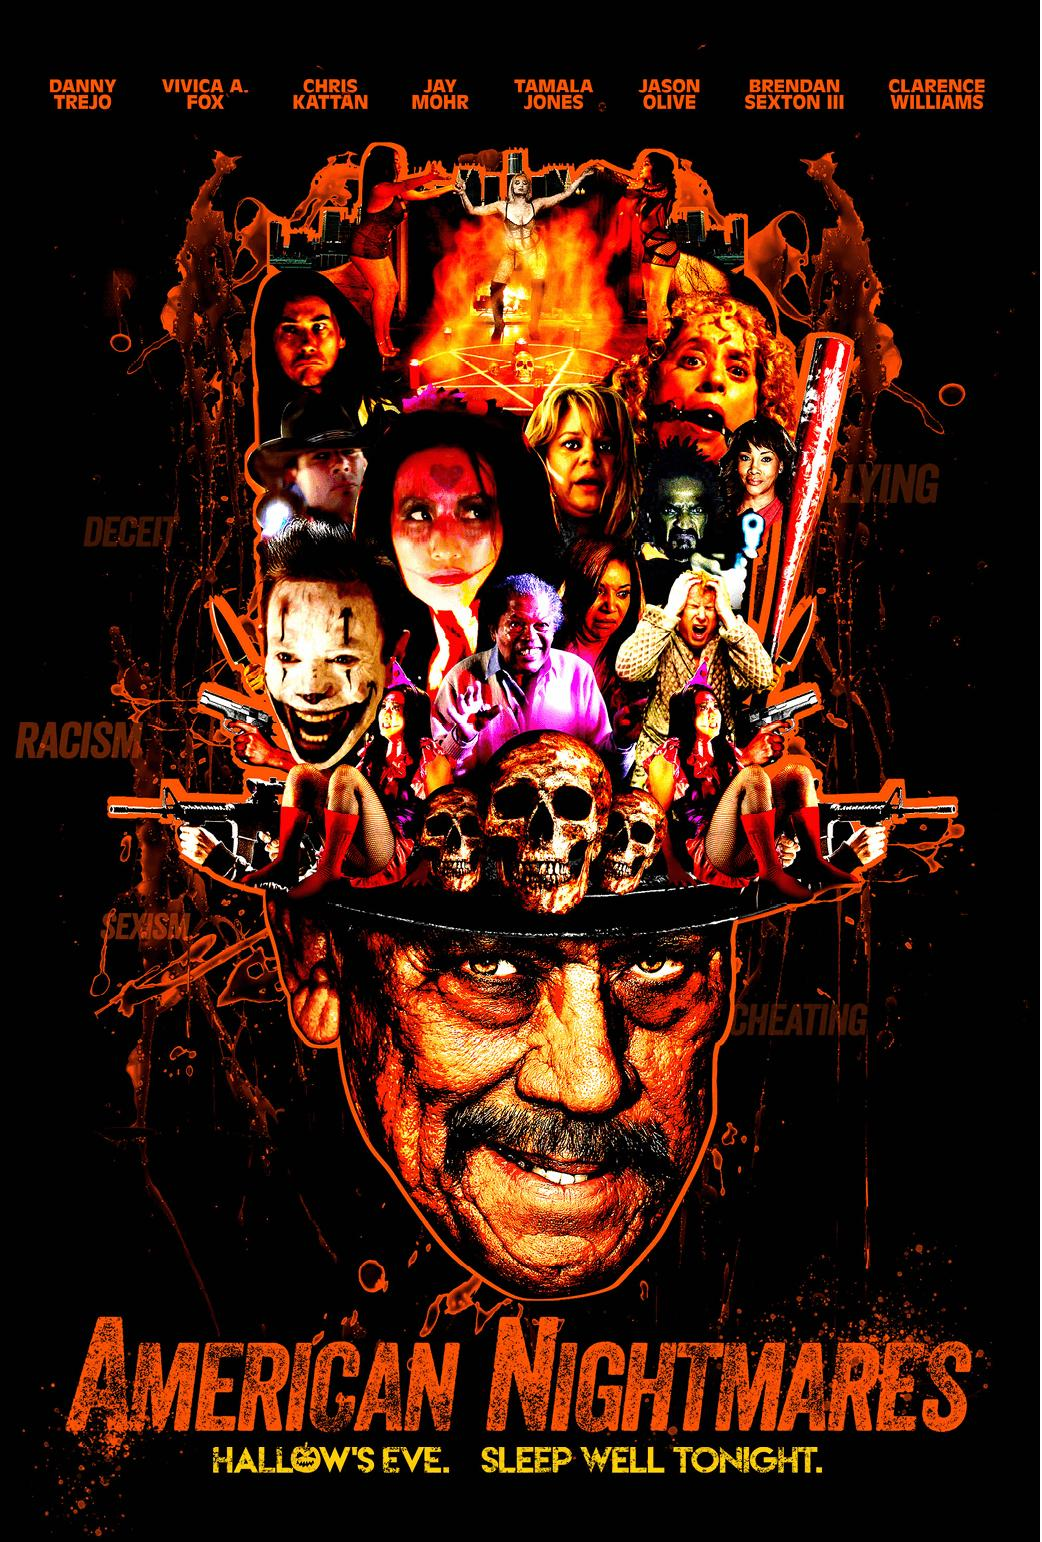 American Nightmares 2018 Imdb From the nightmare at 20000 feet segment. american nightmares 2018 imdb